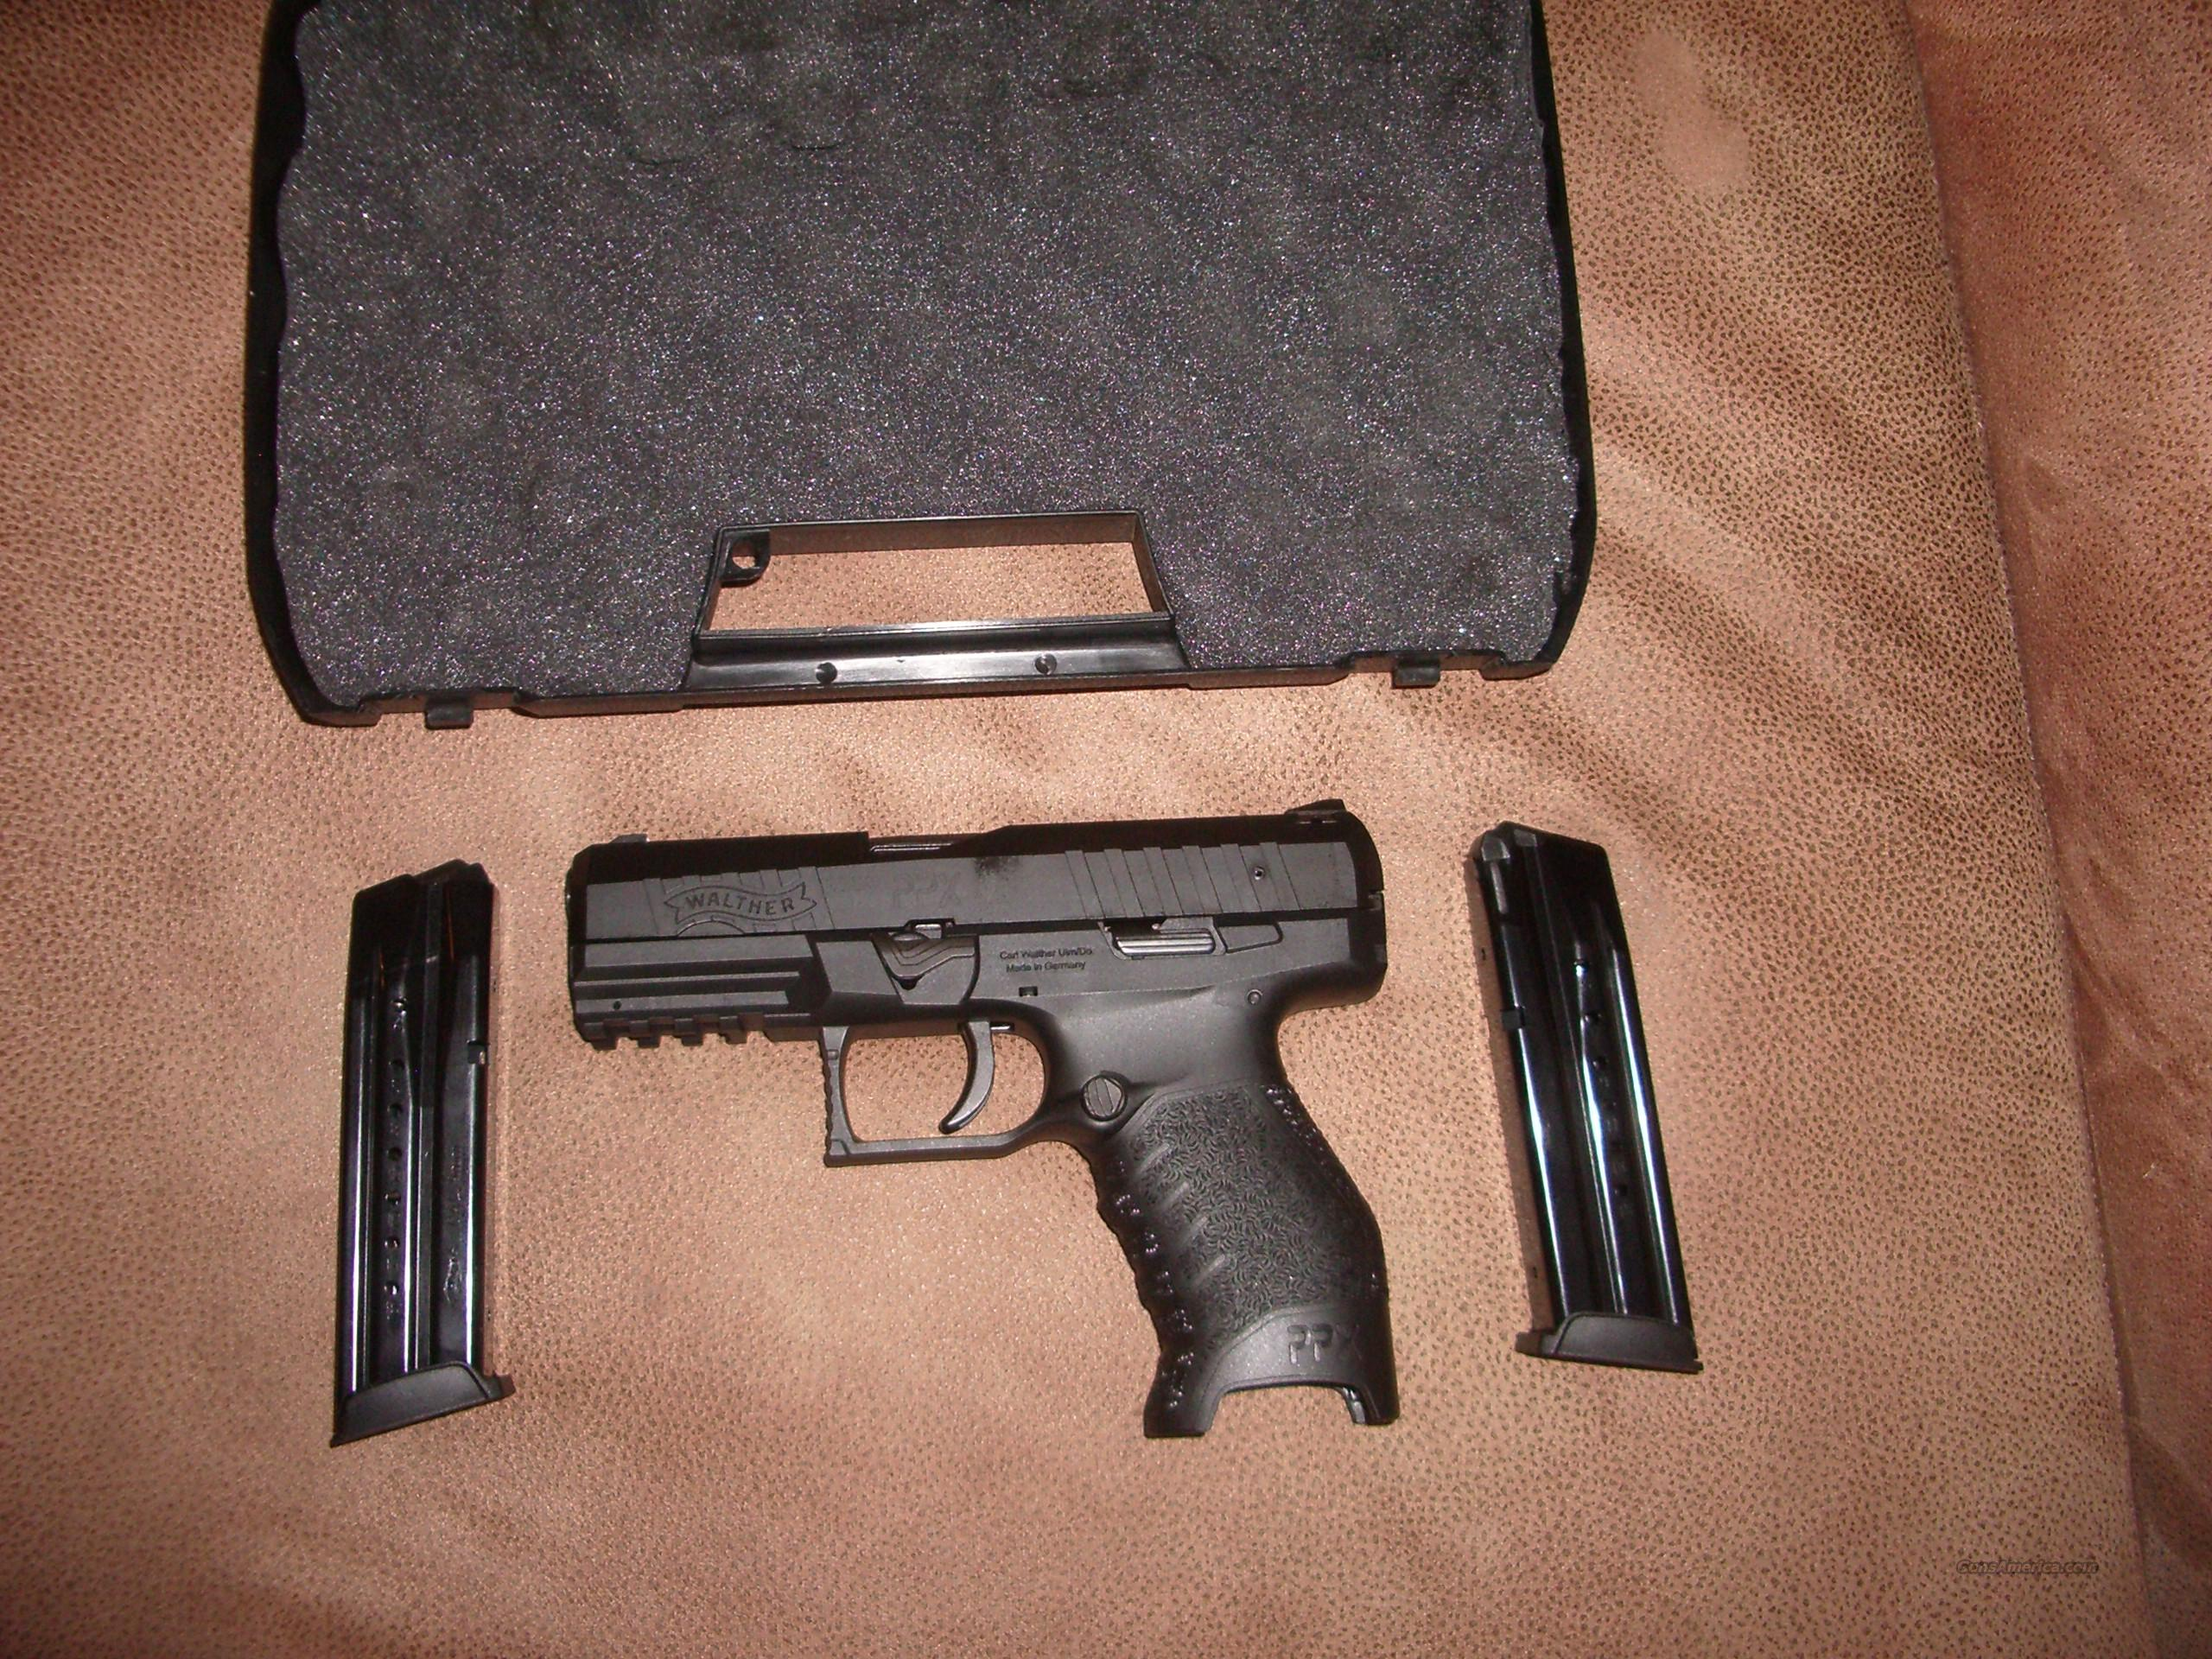 walther ppx 9mm  Guns > Pistols > Walther Pistols > Post WWII > Target Pistols